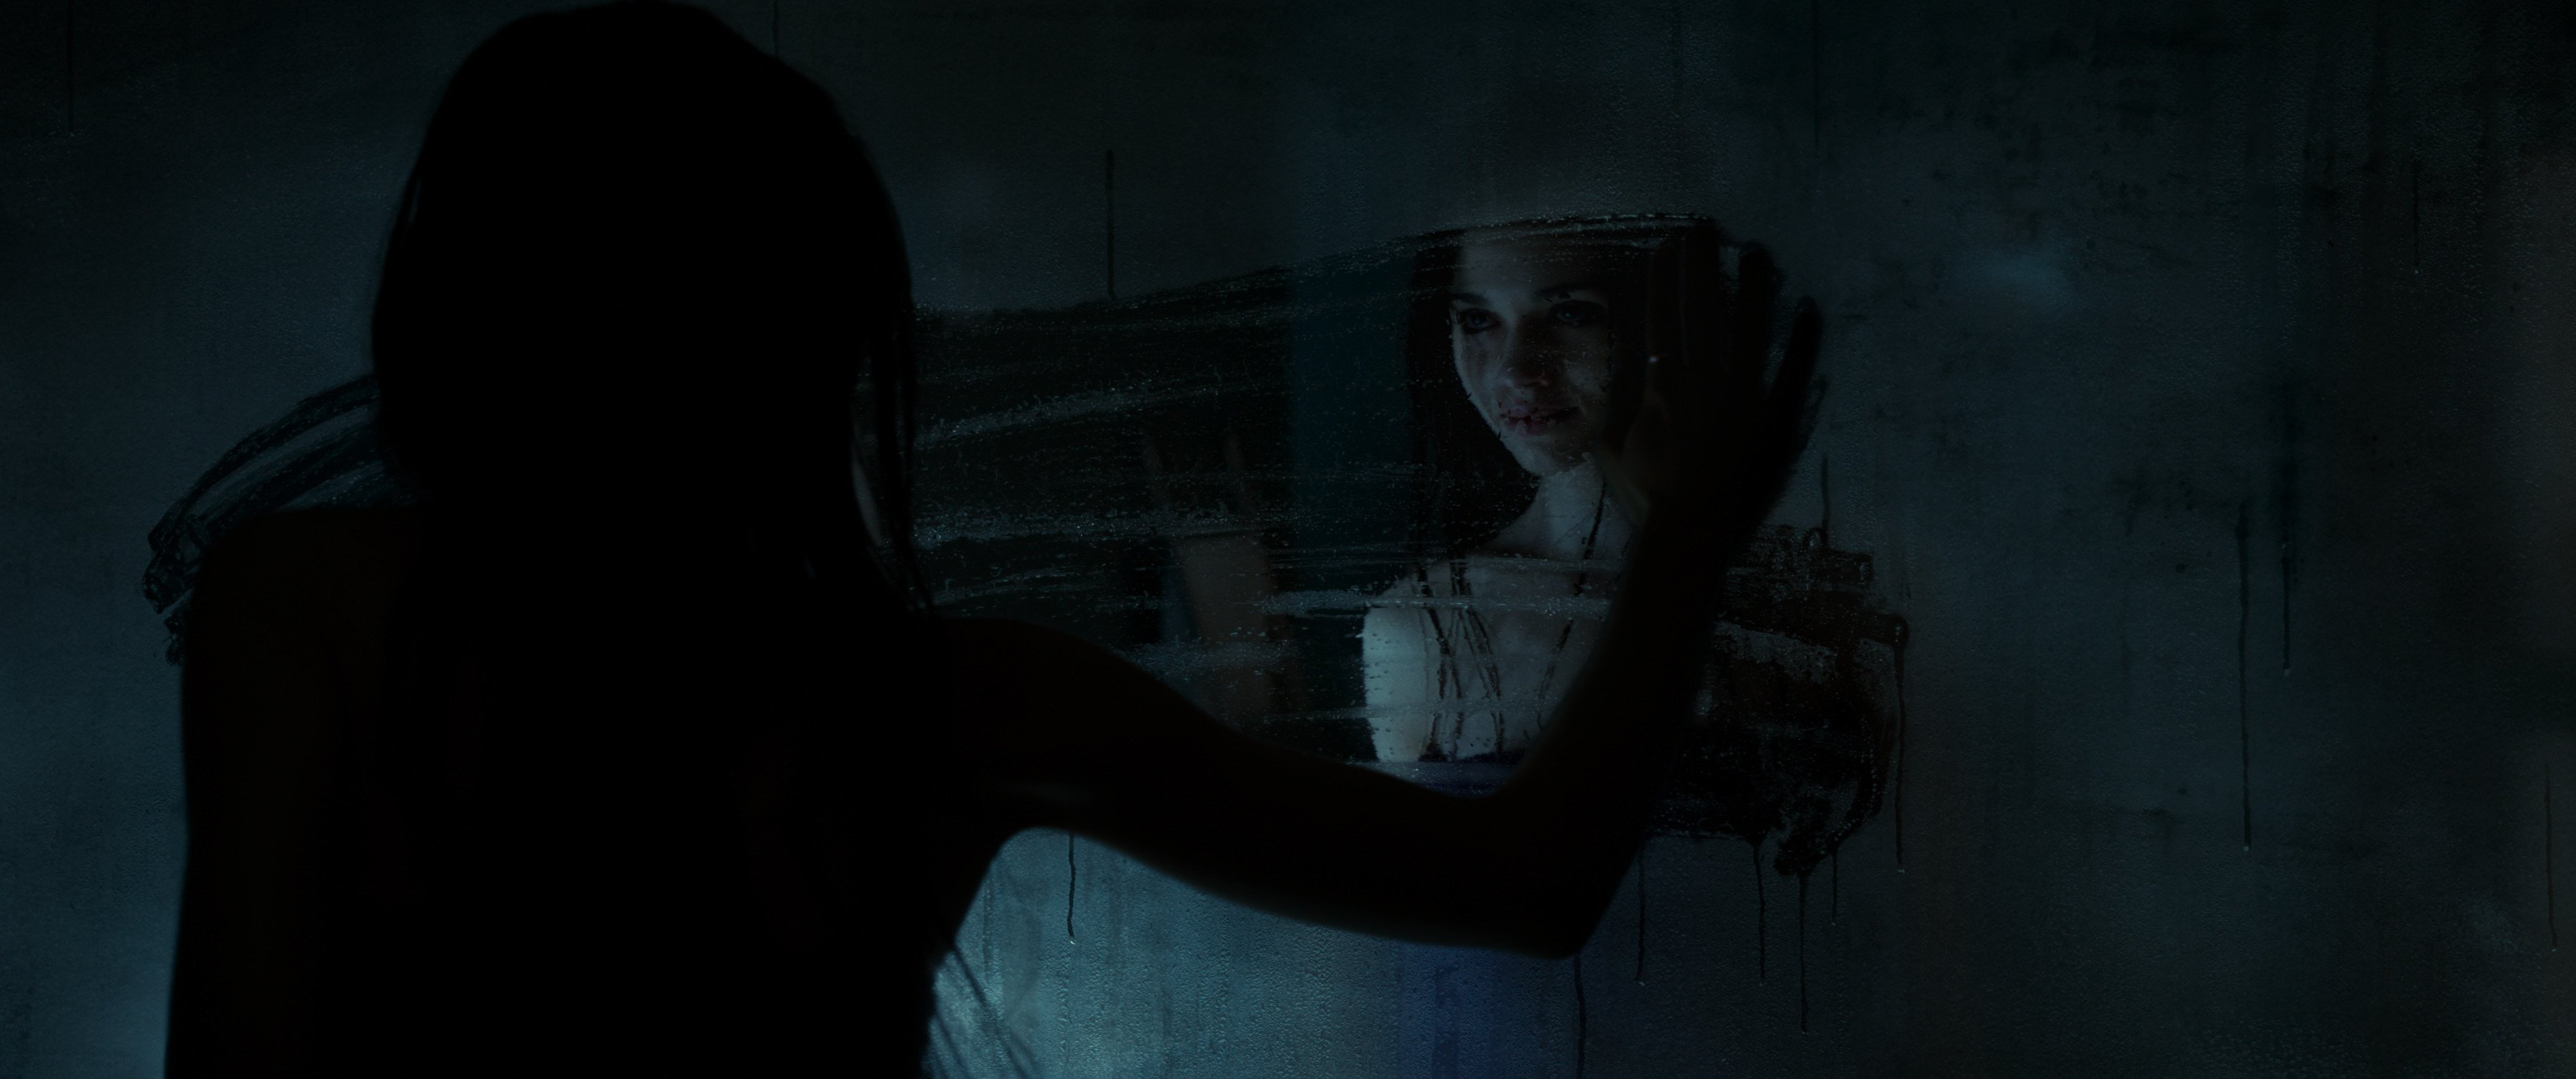 Maria and her sinister reflection